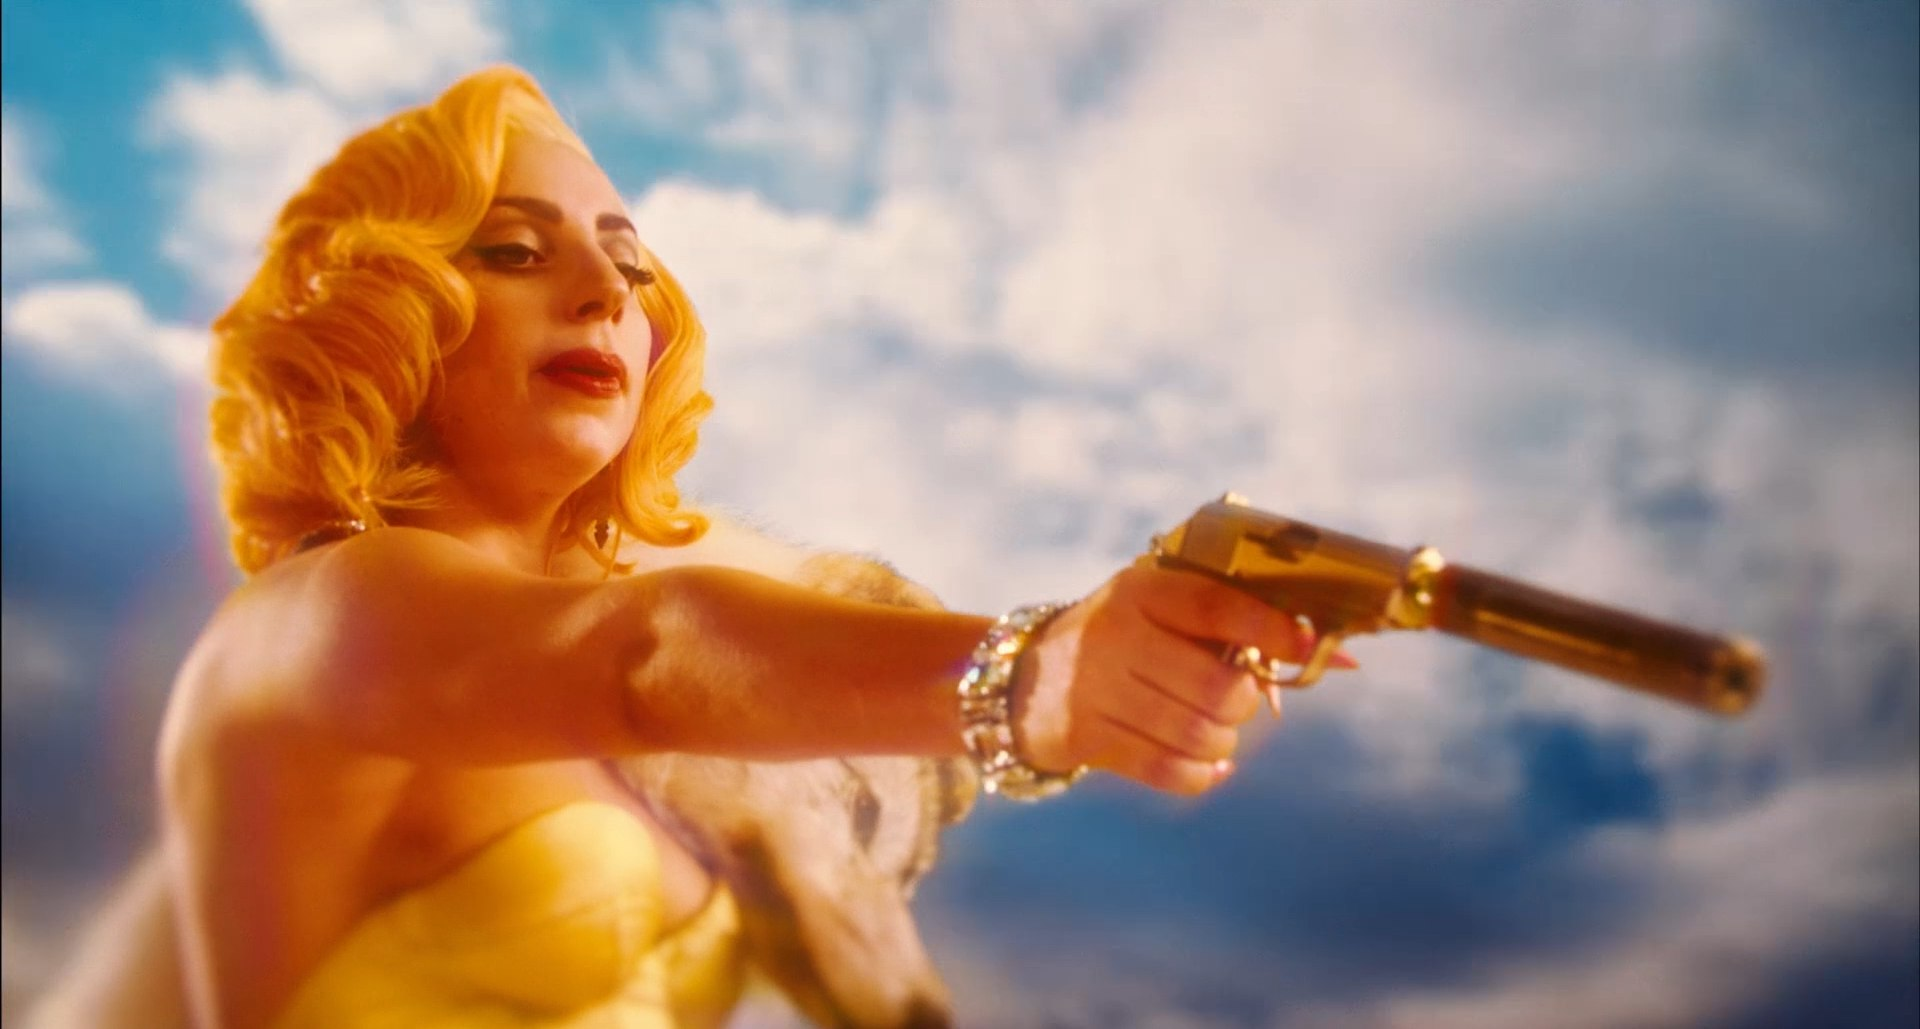 File:Machete Kills Trailer 012.jpg